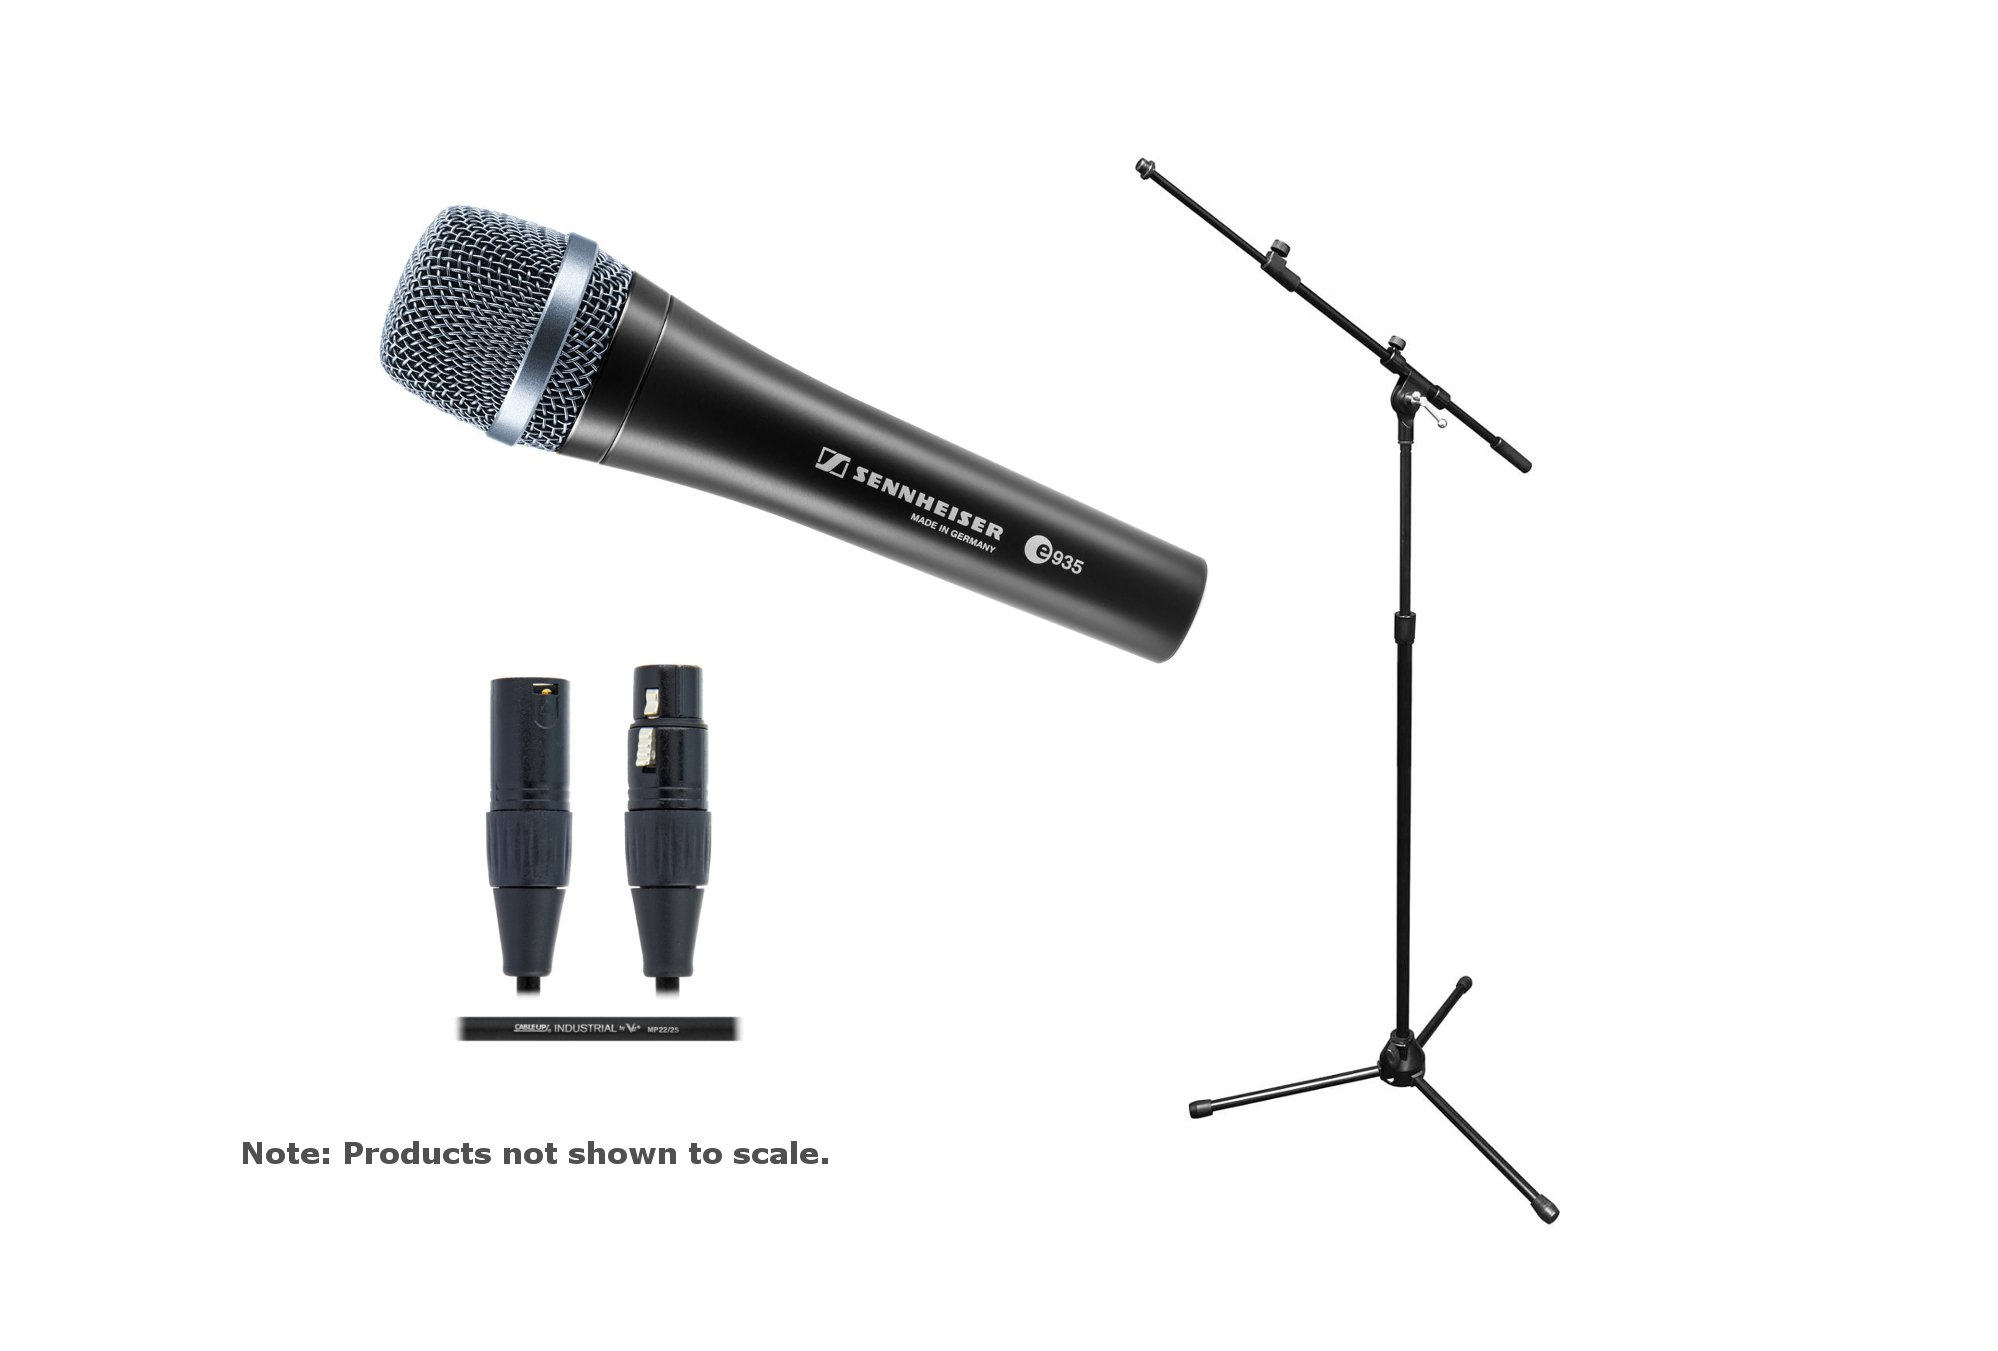 Sennheiser E935-Solo-K Mic / Stand / Cable Exclusive Bundle